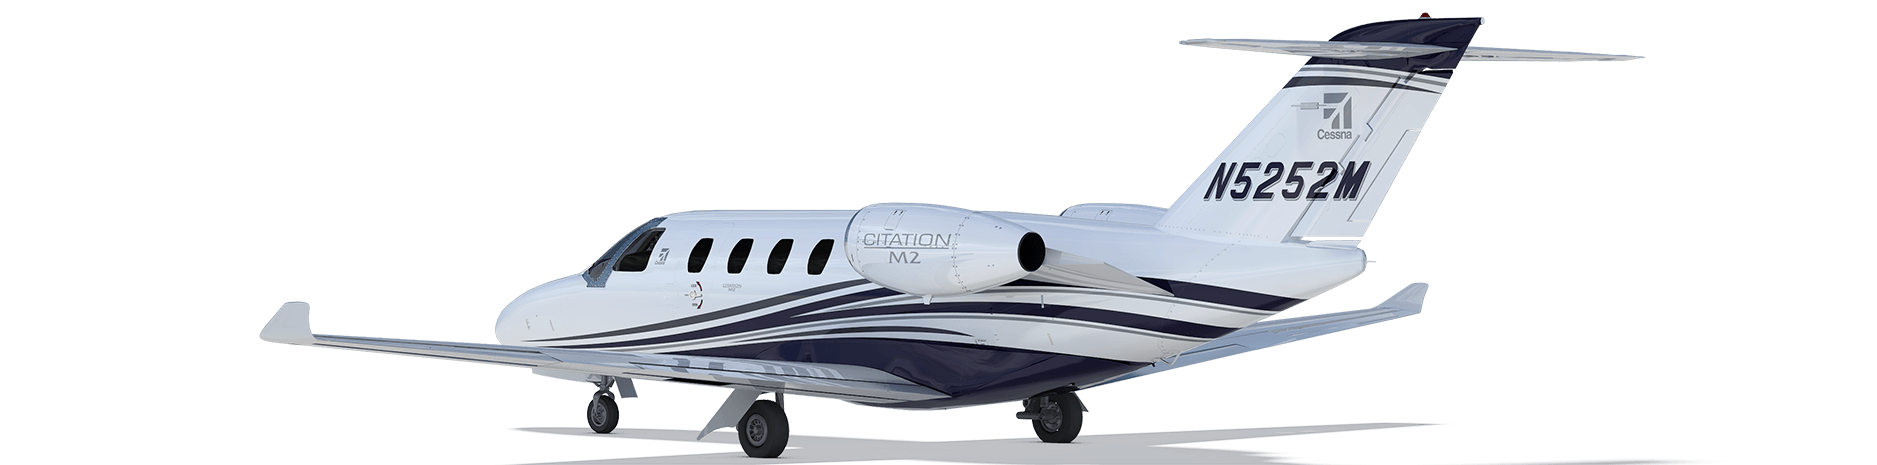 Cessna-Citation-525-2